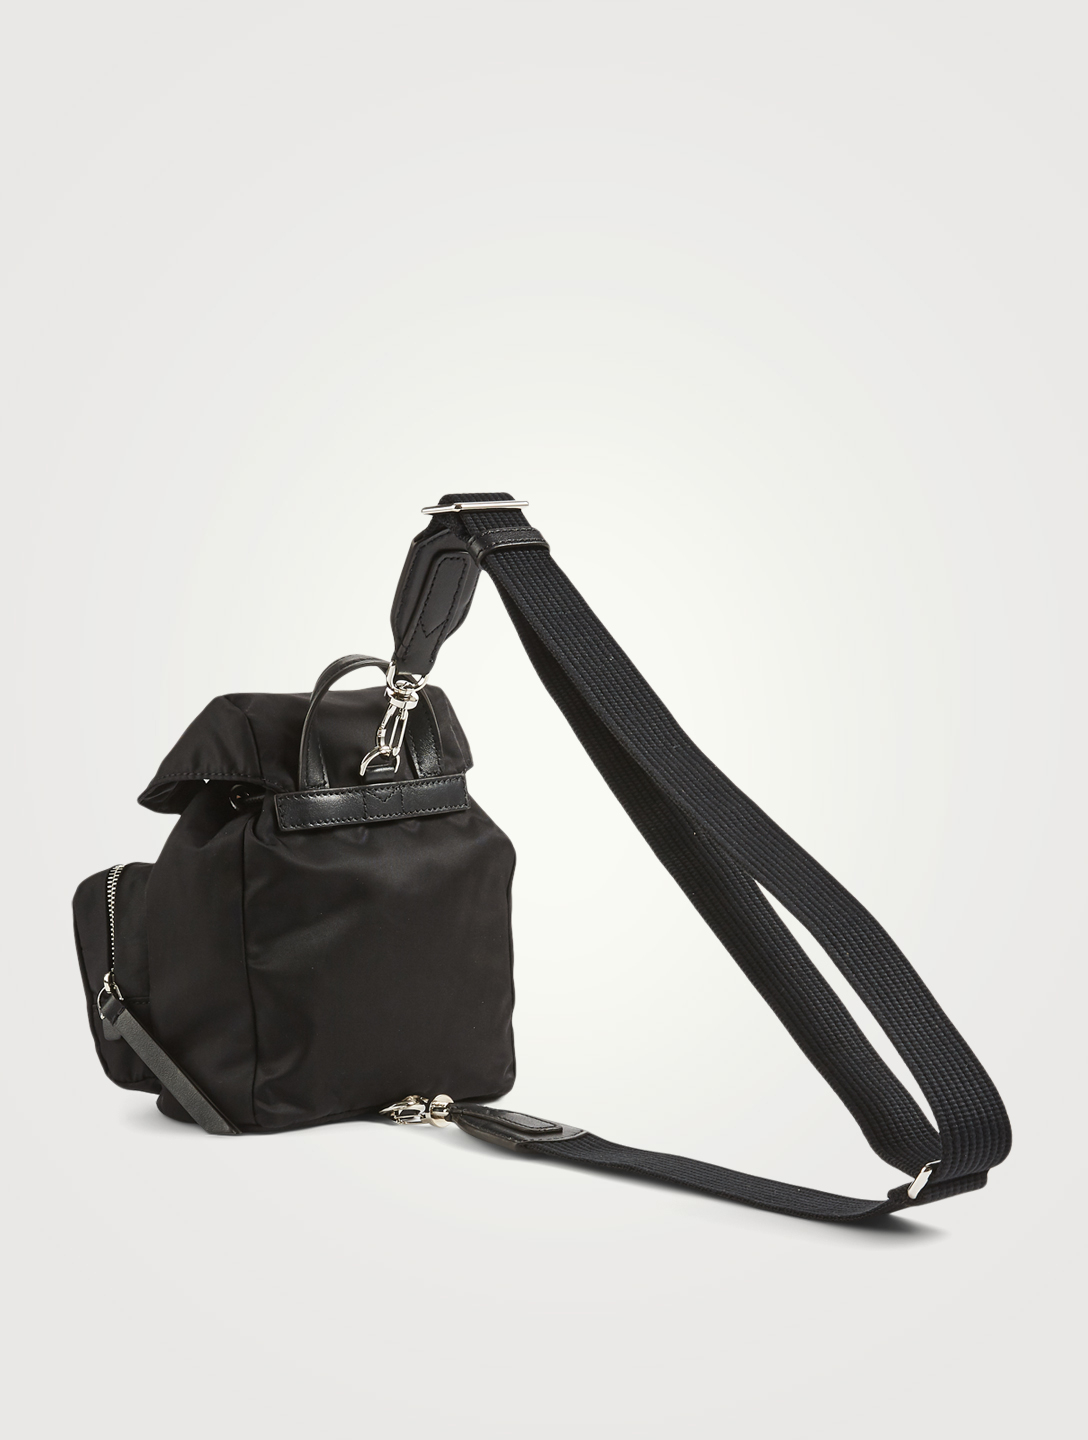 MONCLER Mini Dauphine Nylon Crossbody Bag Women's Black